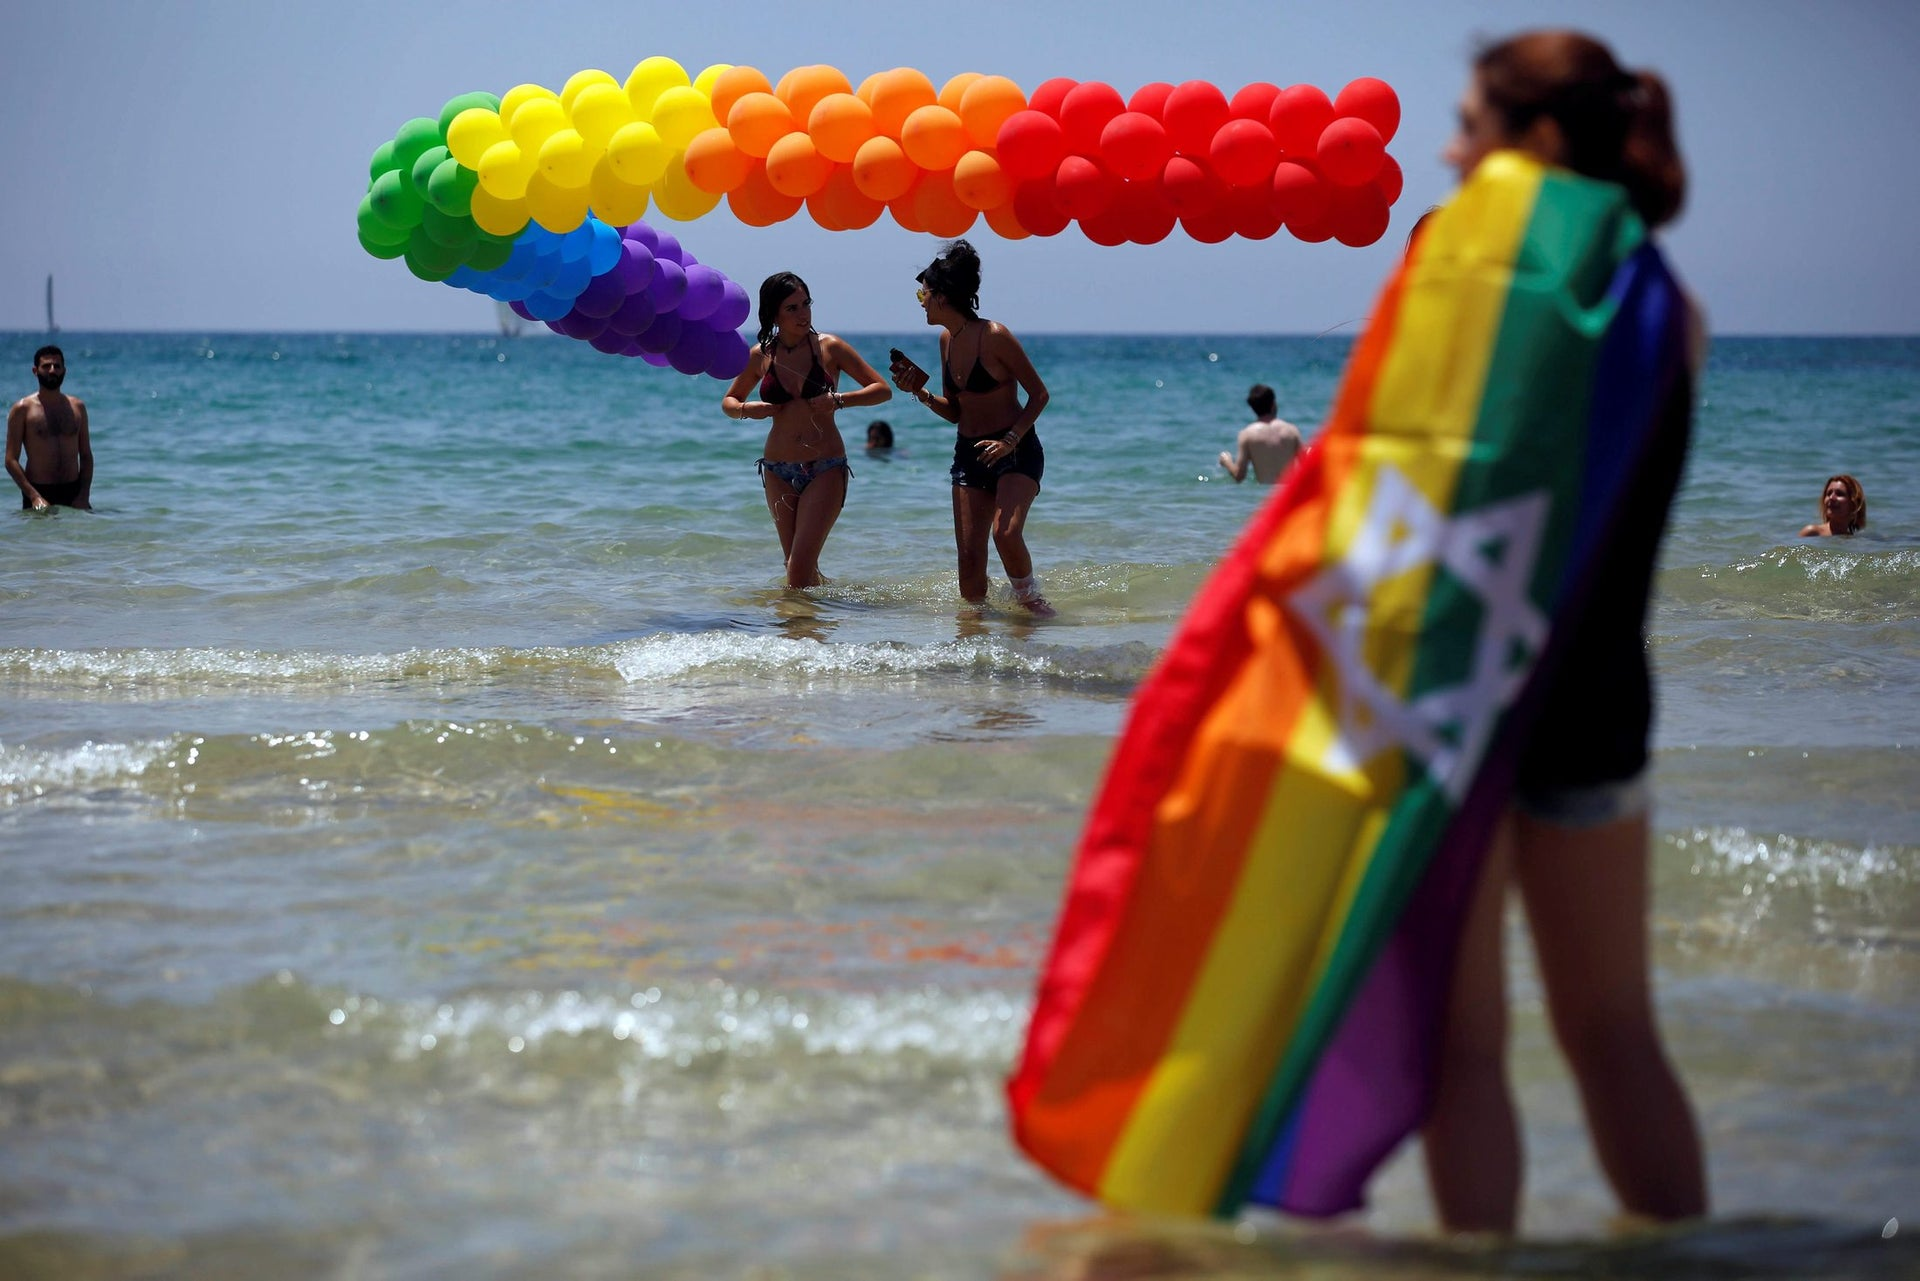 Revellers dip in the Mediterranean sea as they take part in a gay pride parade in Tel Aviv, Israel June 9, 2017.